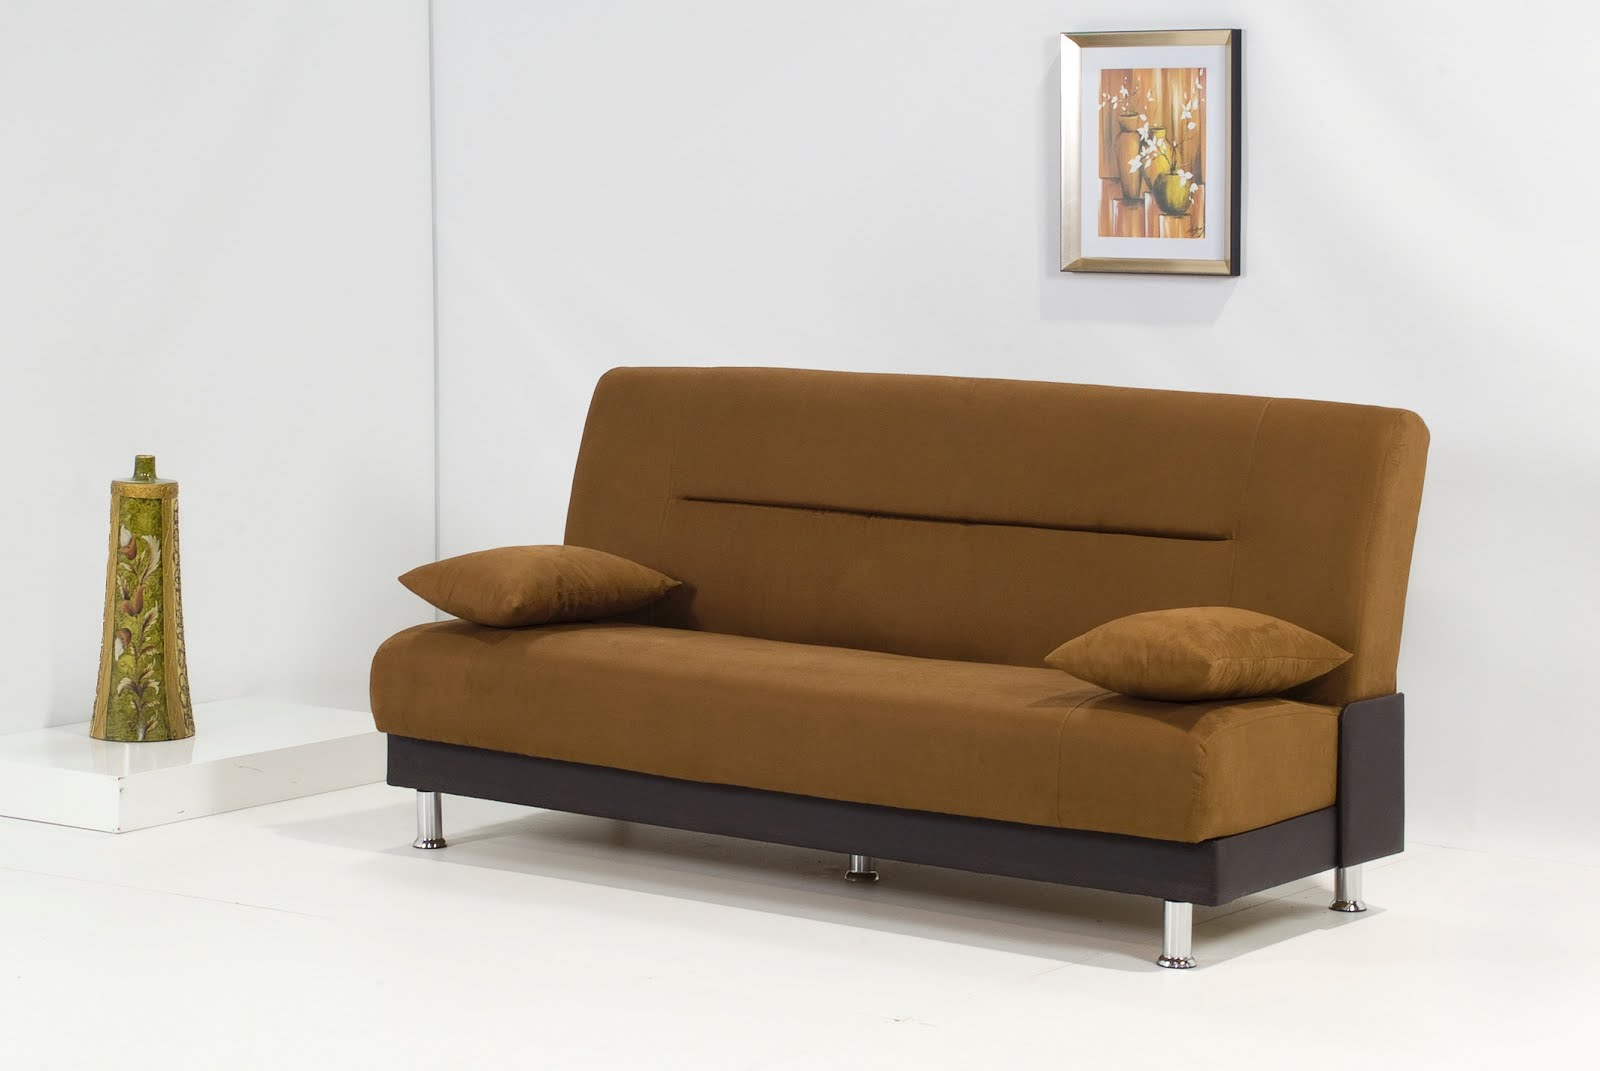 Simple Review About Living Room Furniture: Sleeper Sofas ...